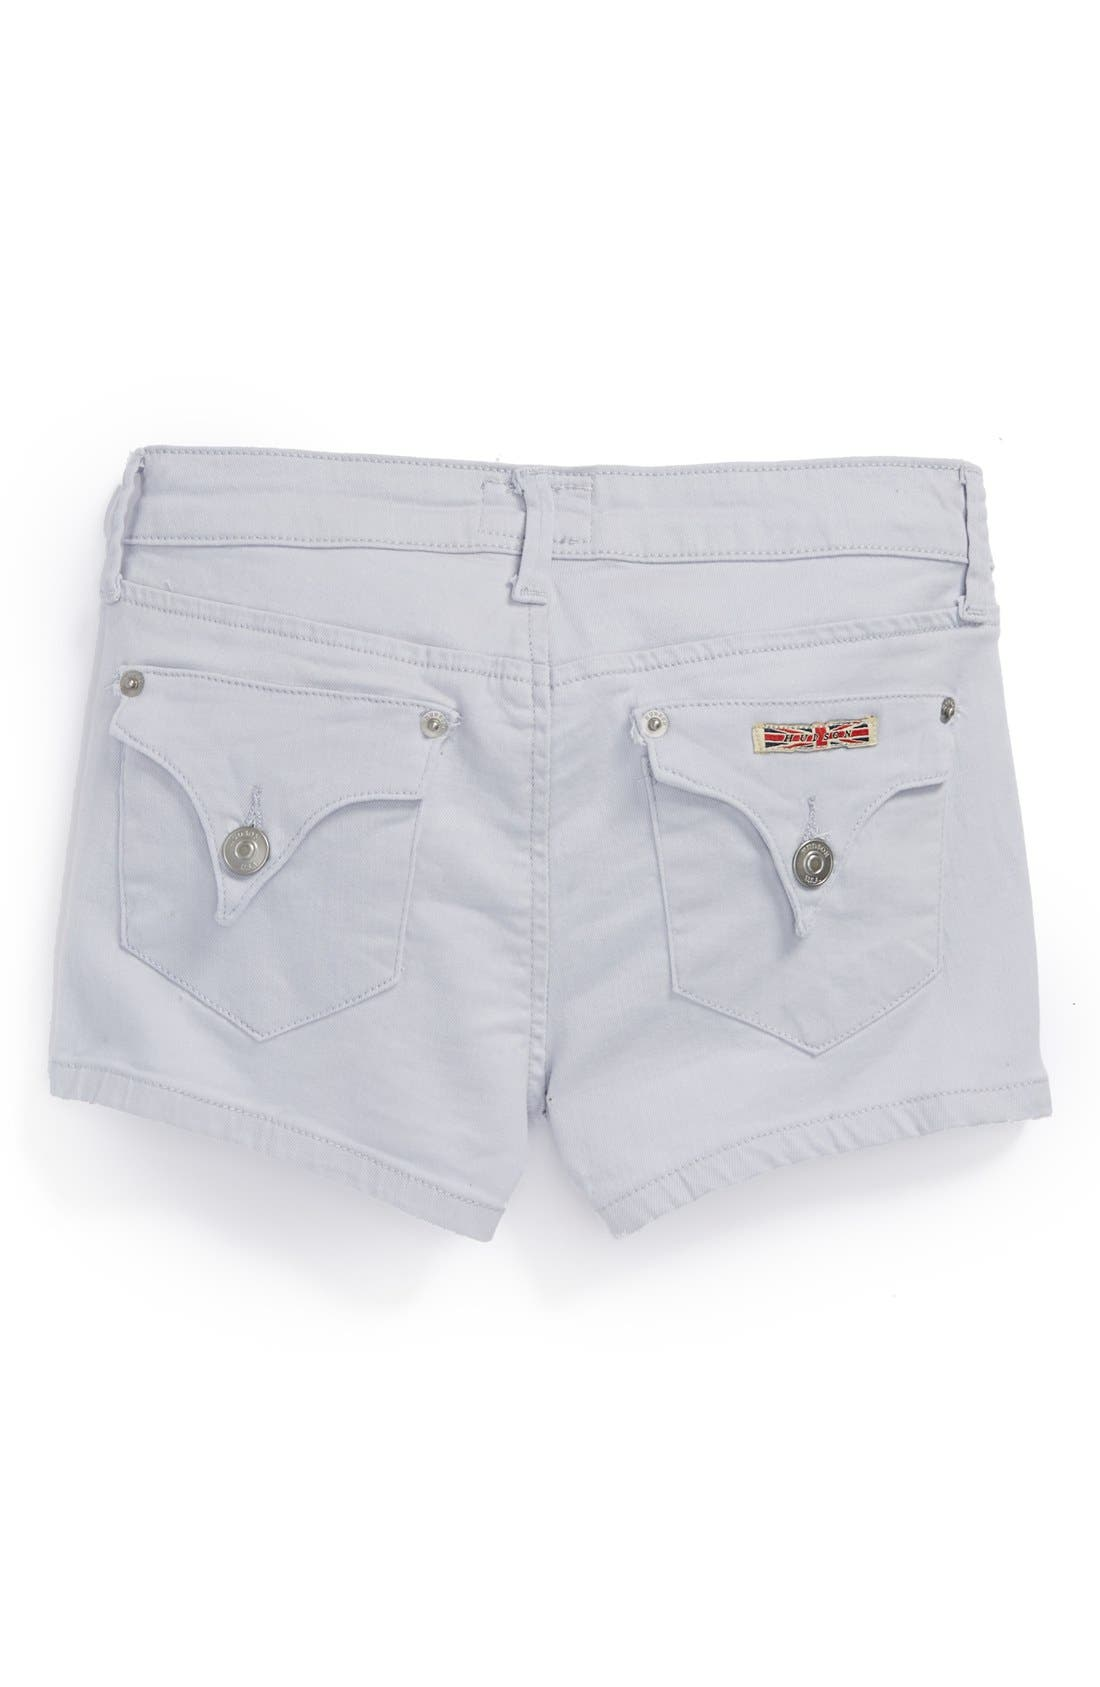 Main Image - Hudson Kids 'Vice Versa' Shorts (Little Girls)